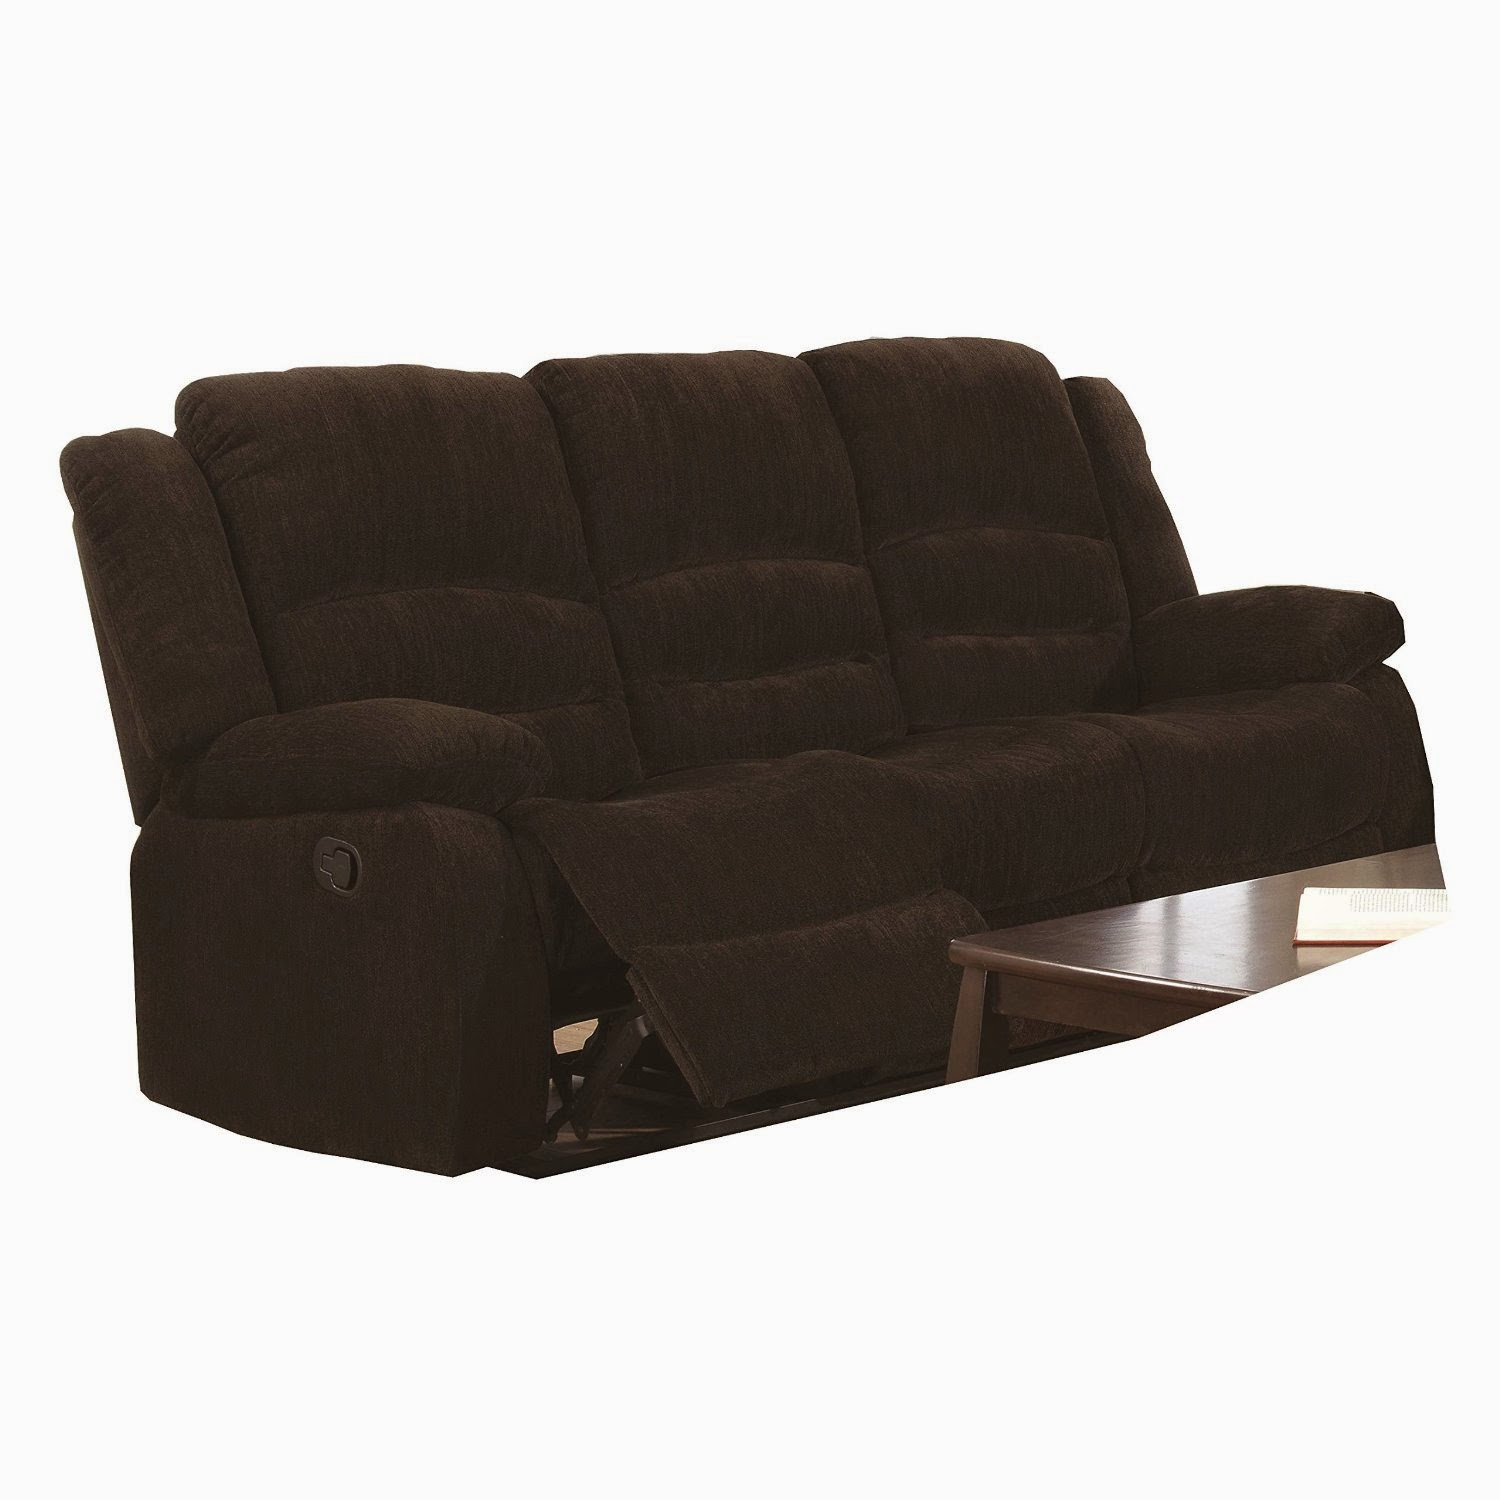 Best ideas about Triple Reclining Sofa . Save or Pin Cheap Recliner Sofas For Sale Triple Reclining Sofa Fabric Now.